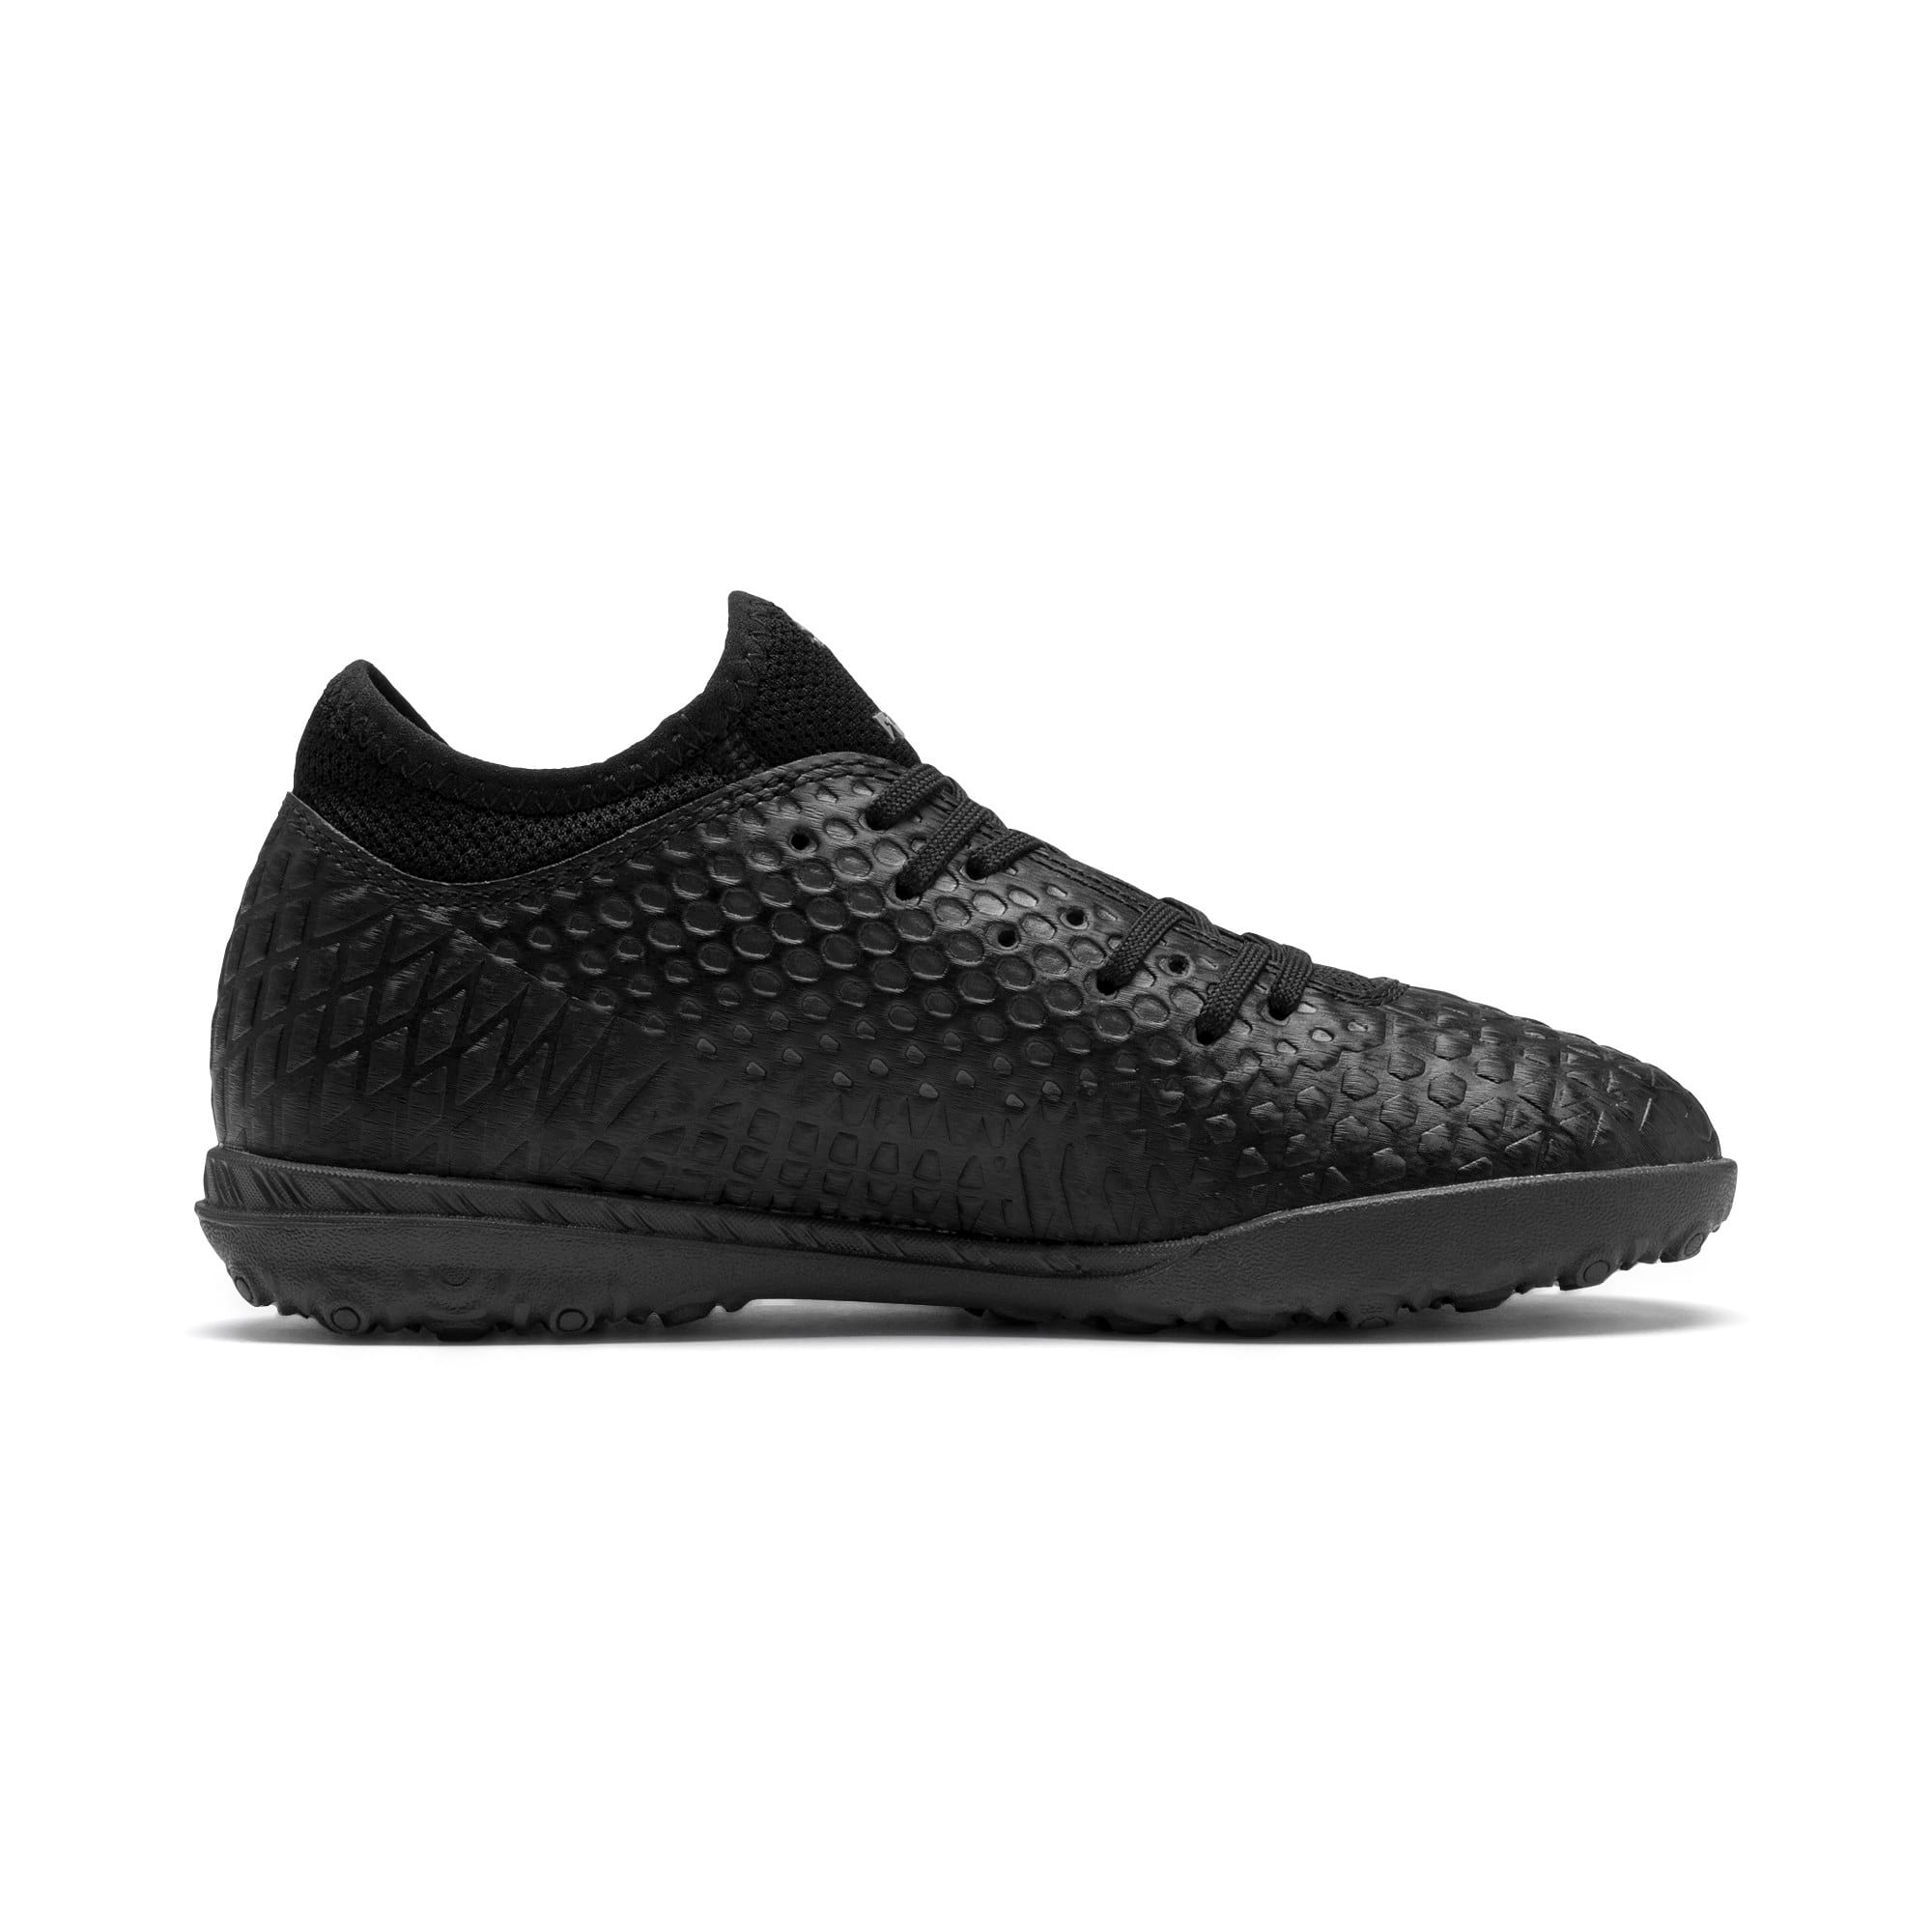 FUTURE 4.4 TT Youth Football Boots, Black-Black-Puma Aged Silver, large